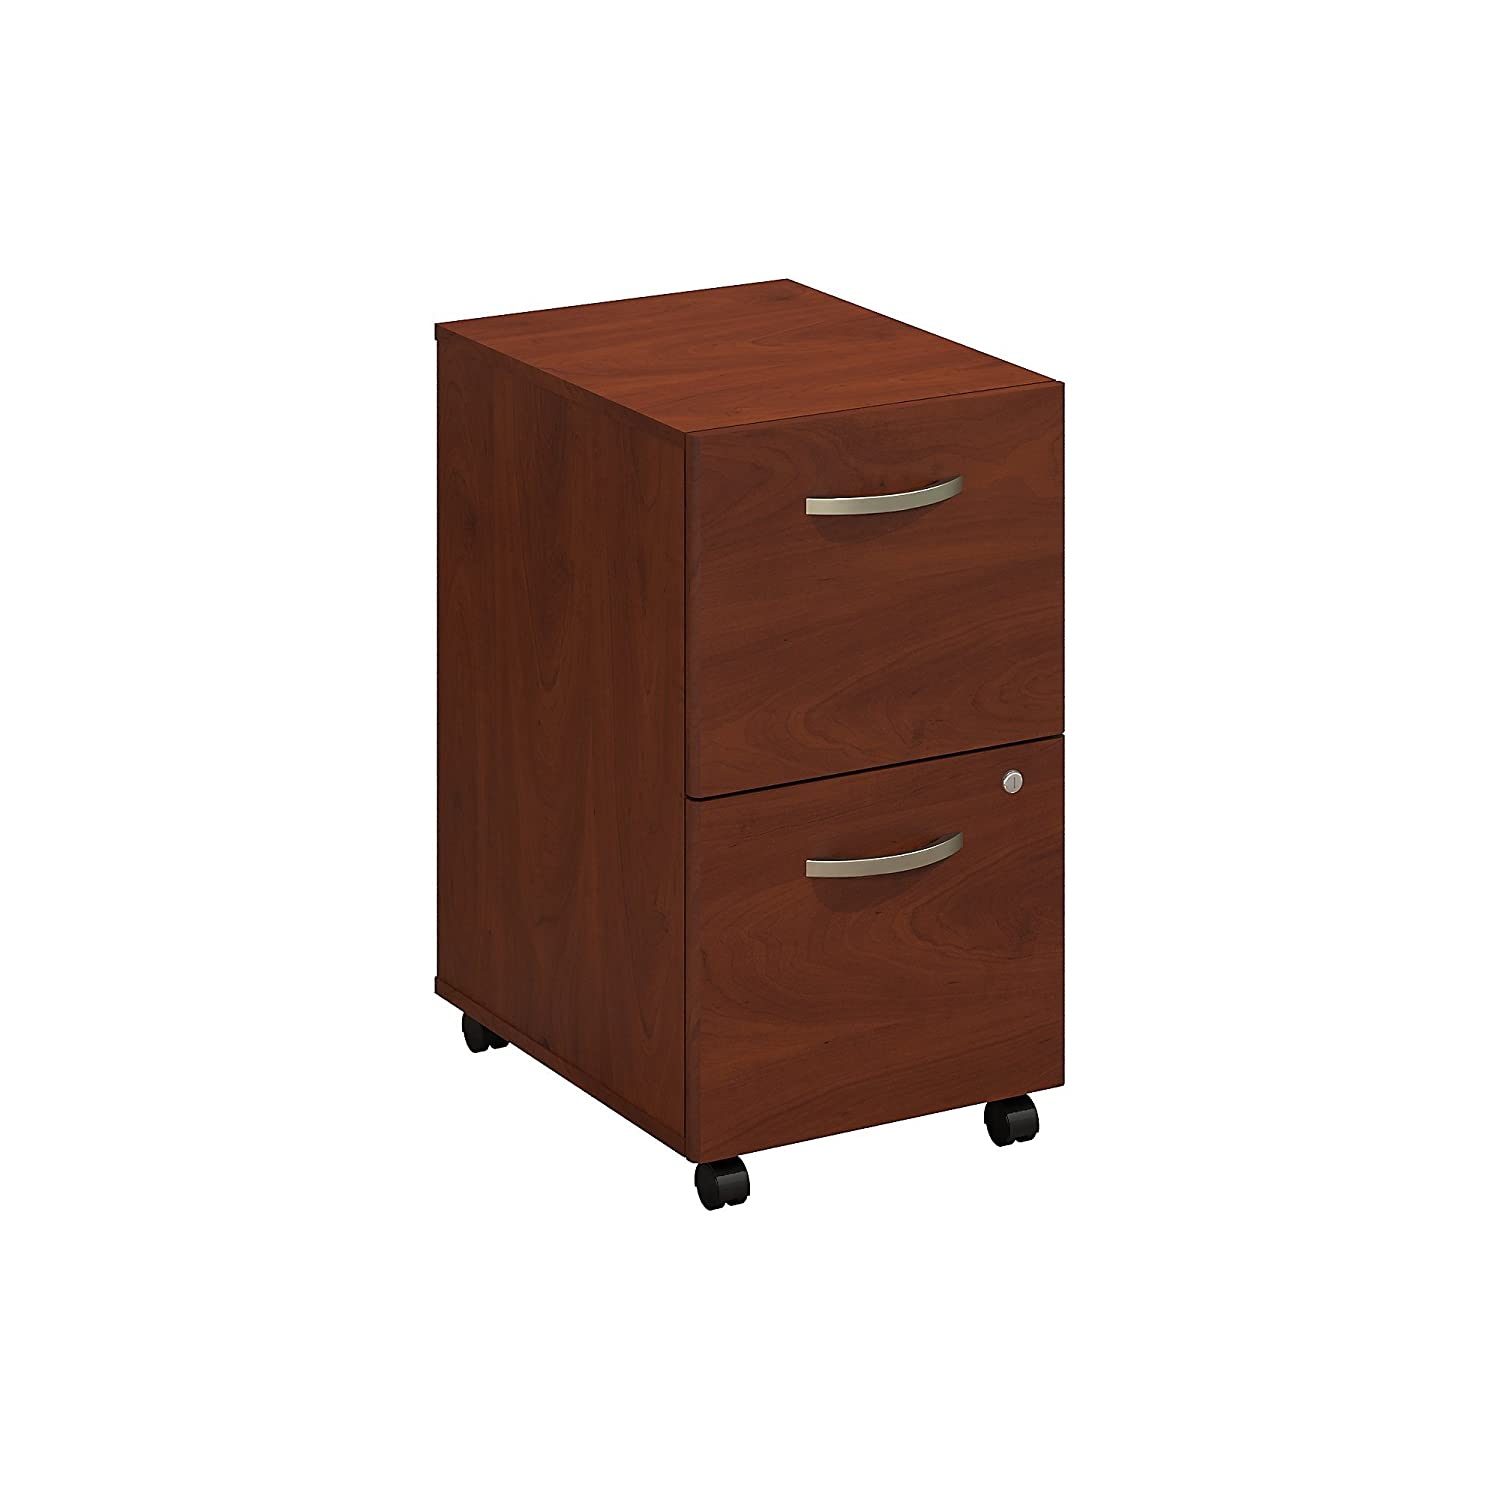 Amazon.com: Bush Business muebles Series C Elite 2 cajón ...